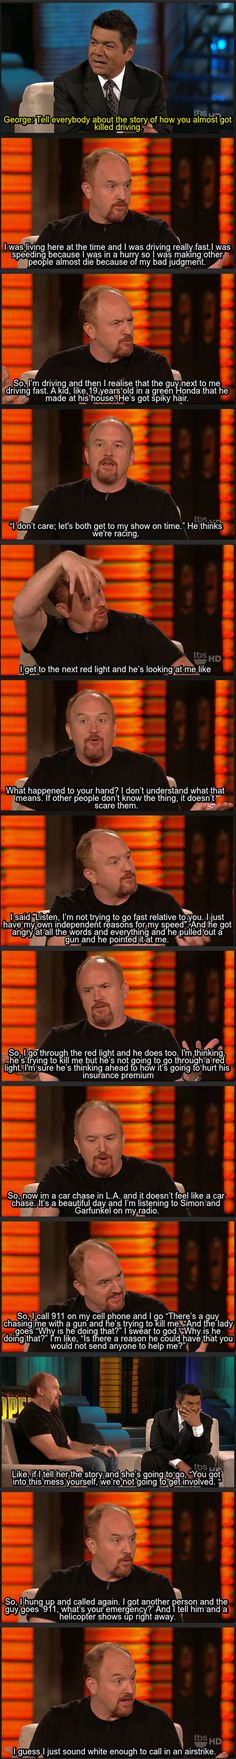 Louis C K's car chase